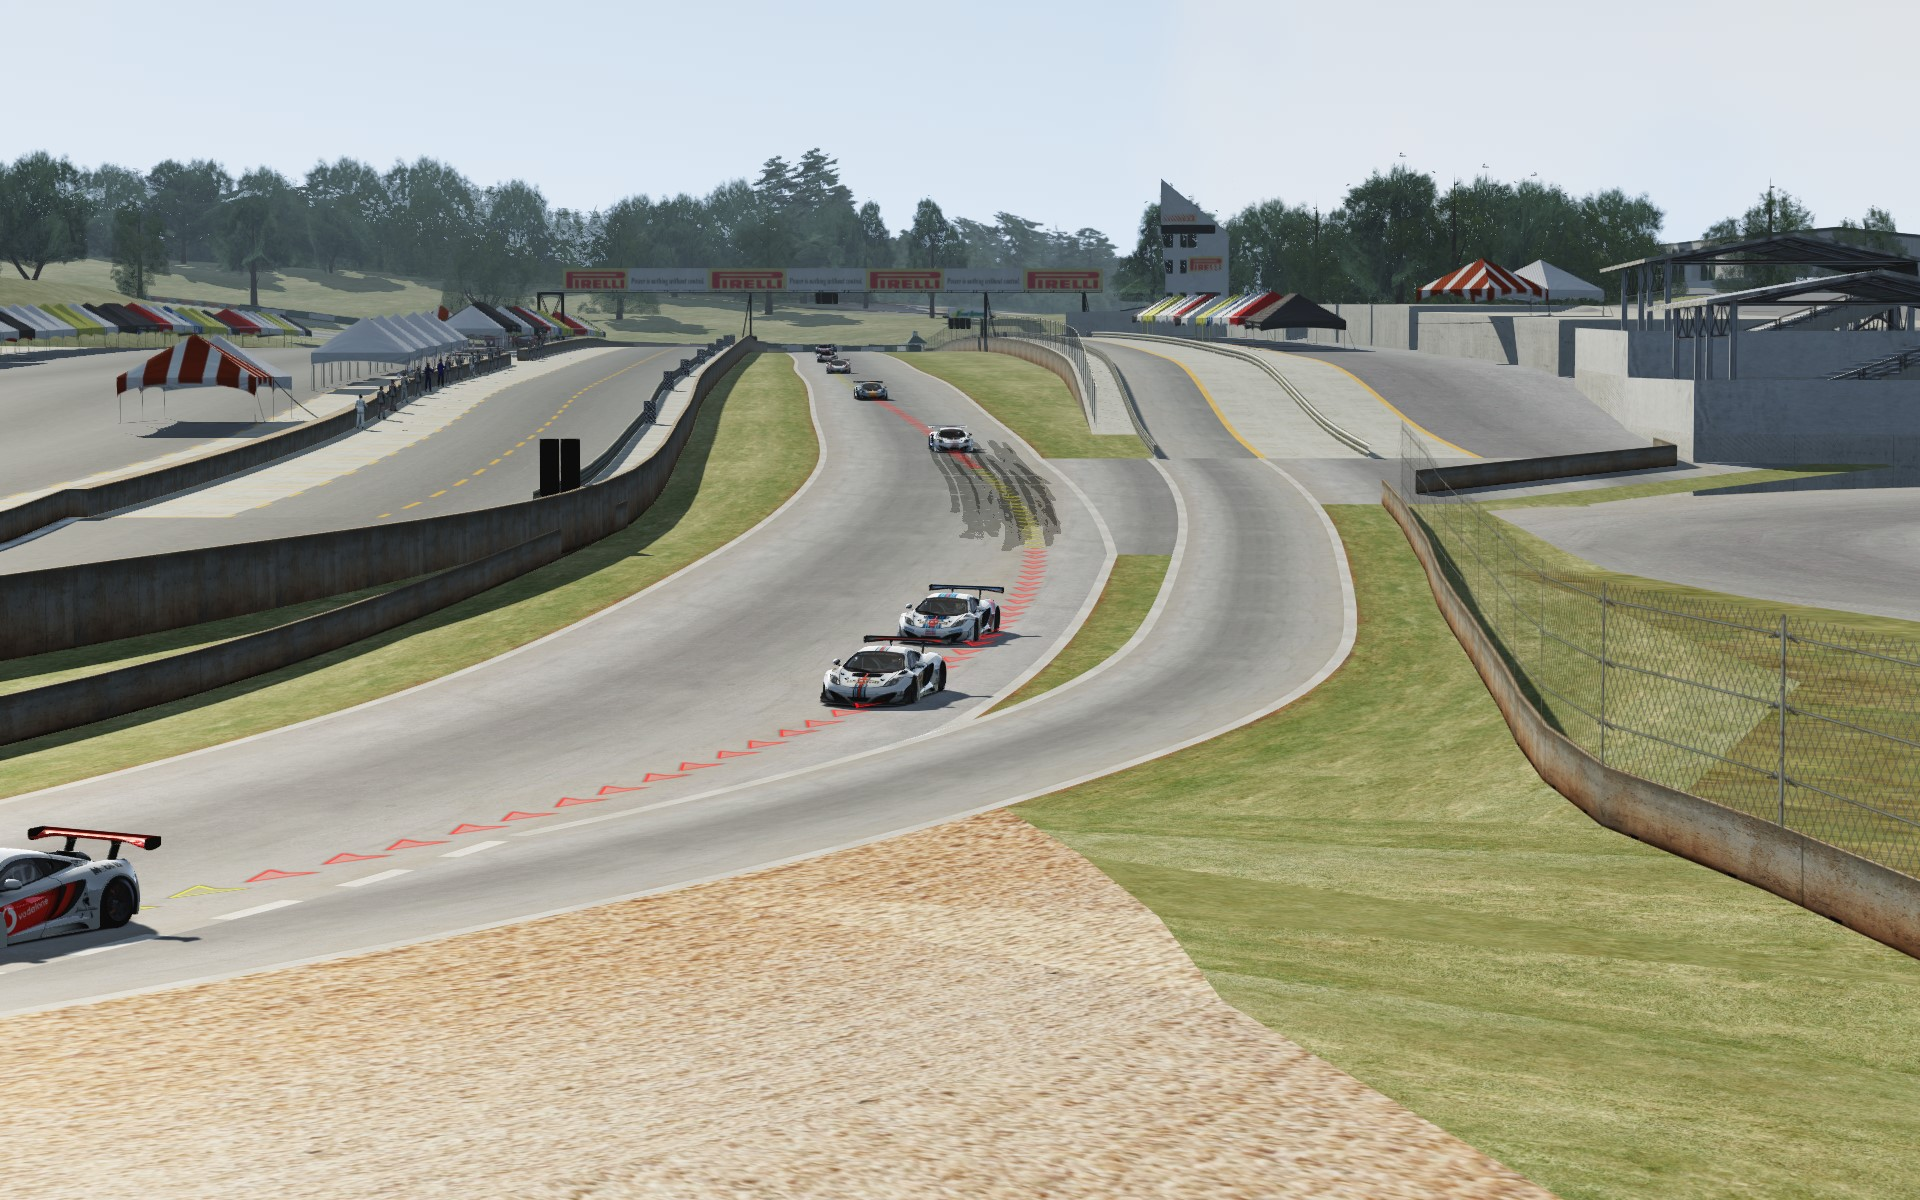 Screenshot_mclaren_mp412c_gt3_road atlanta_10-8-115-13-57-41.jpg